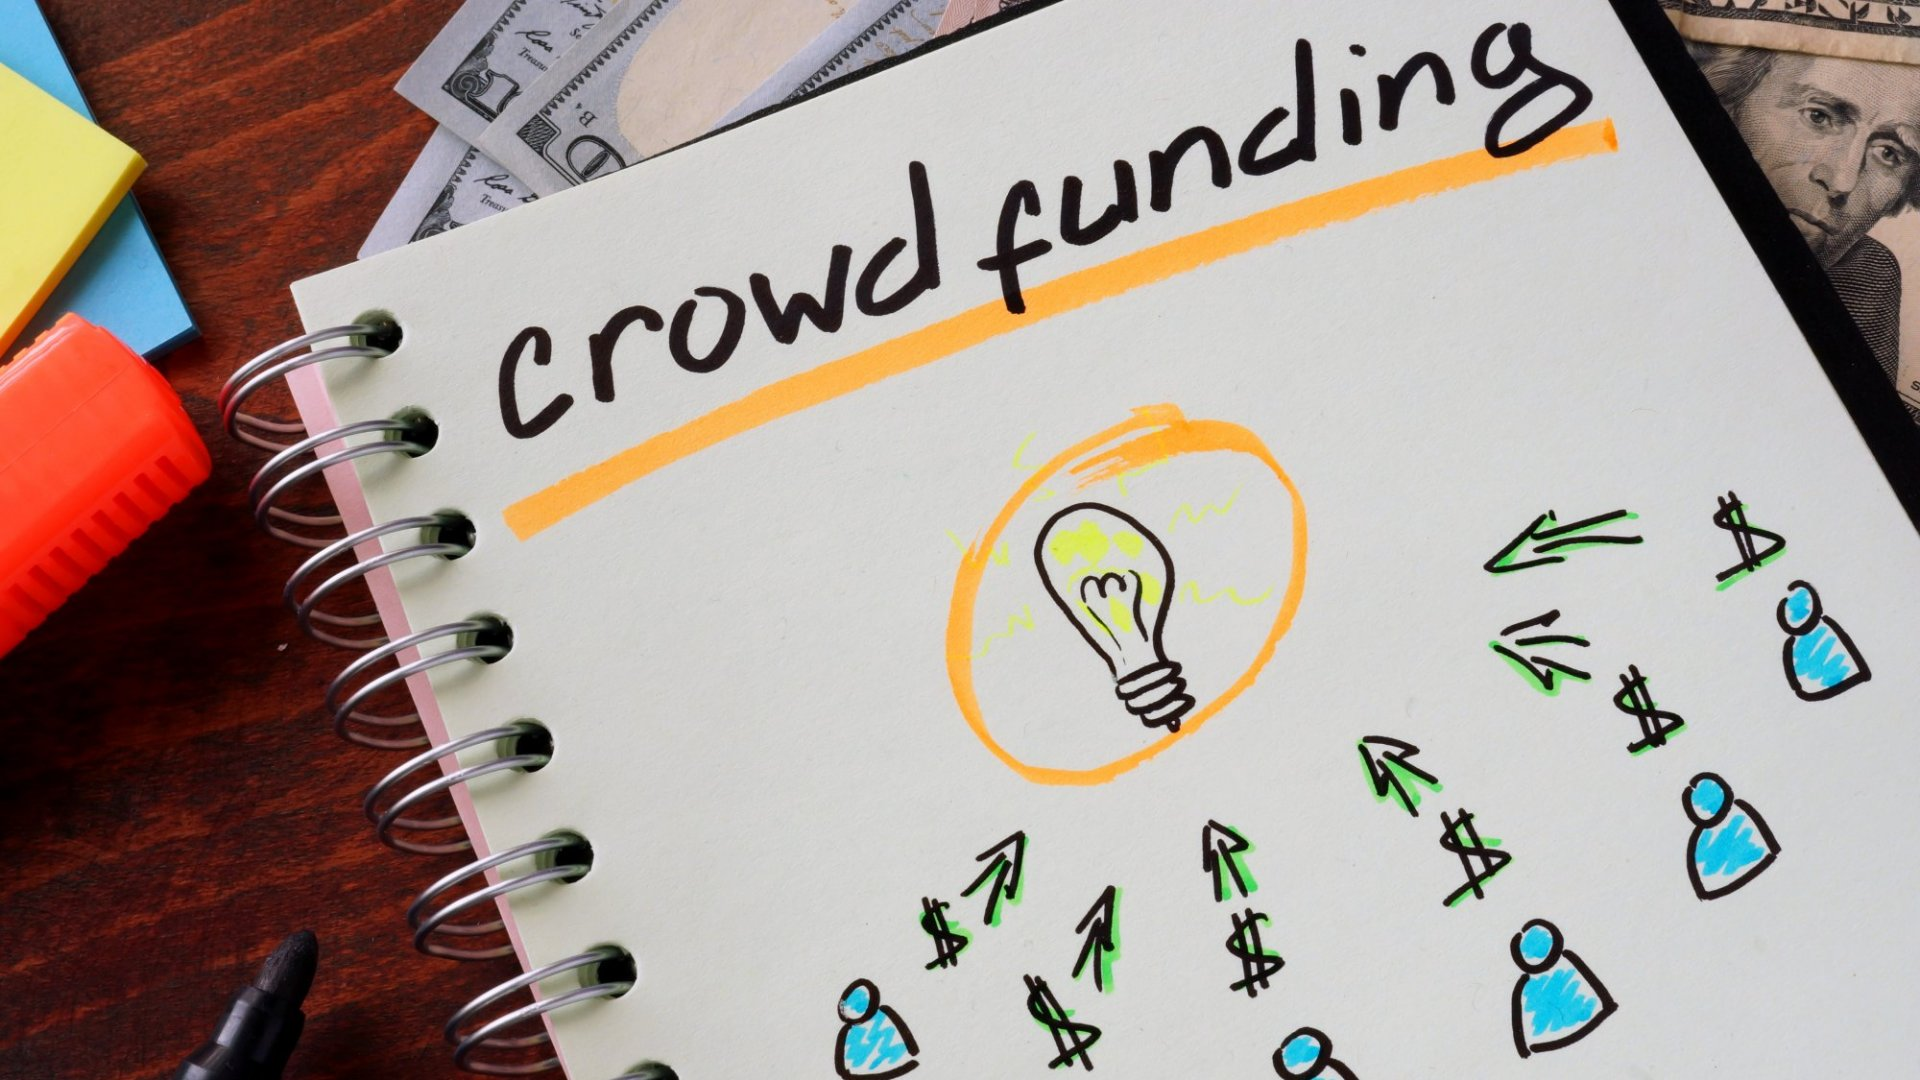 A bright idea can be realized with the help of a bunch of dollars — or a crowd willing to pitch in.